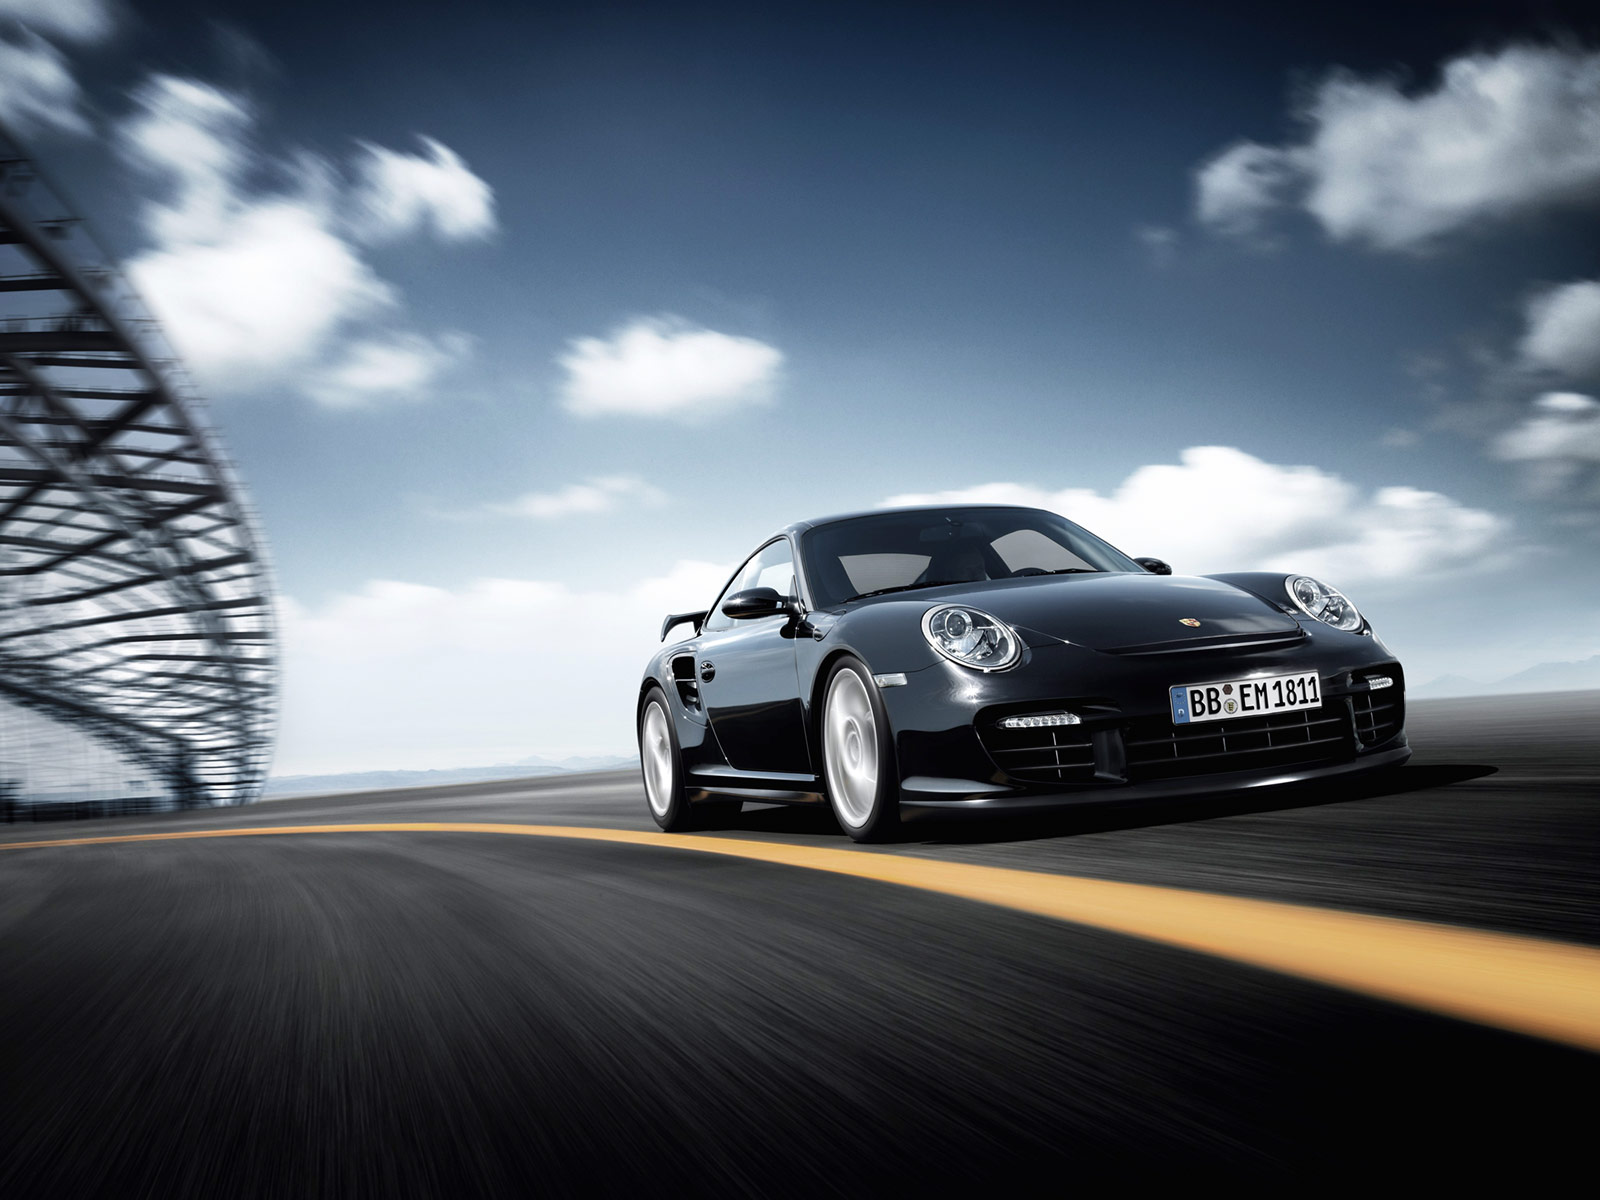 porsche wallpaper hd cars #1150 wallpaper | walldiskpaper